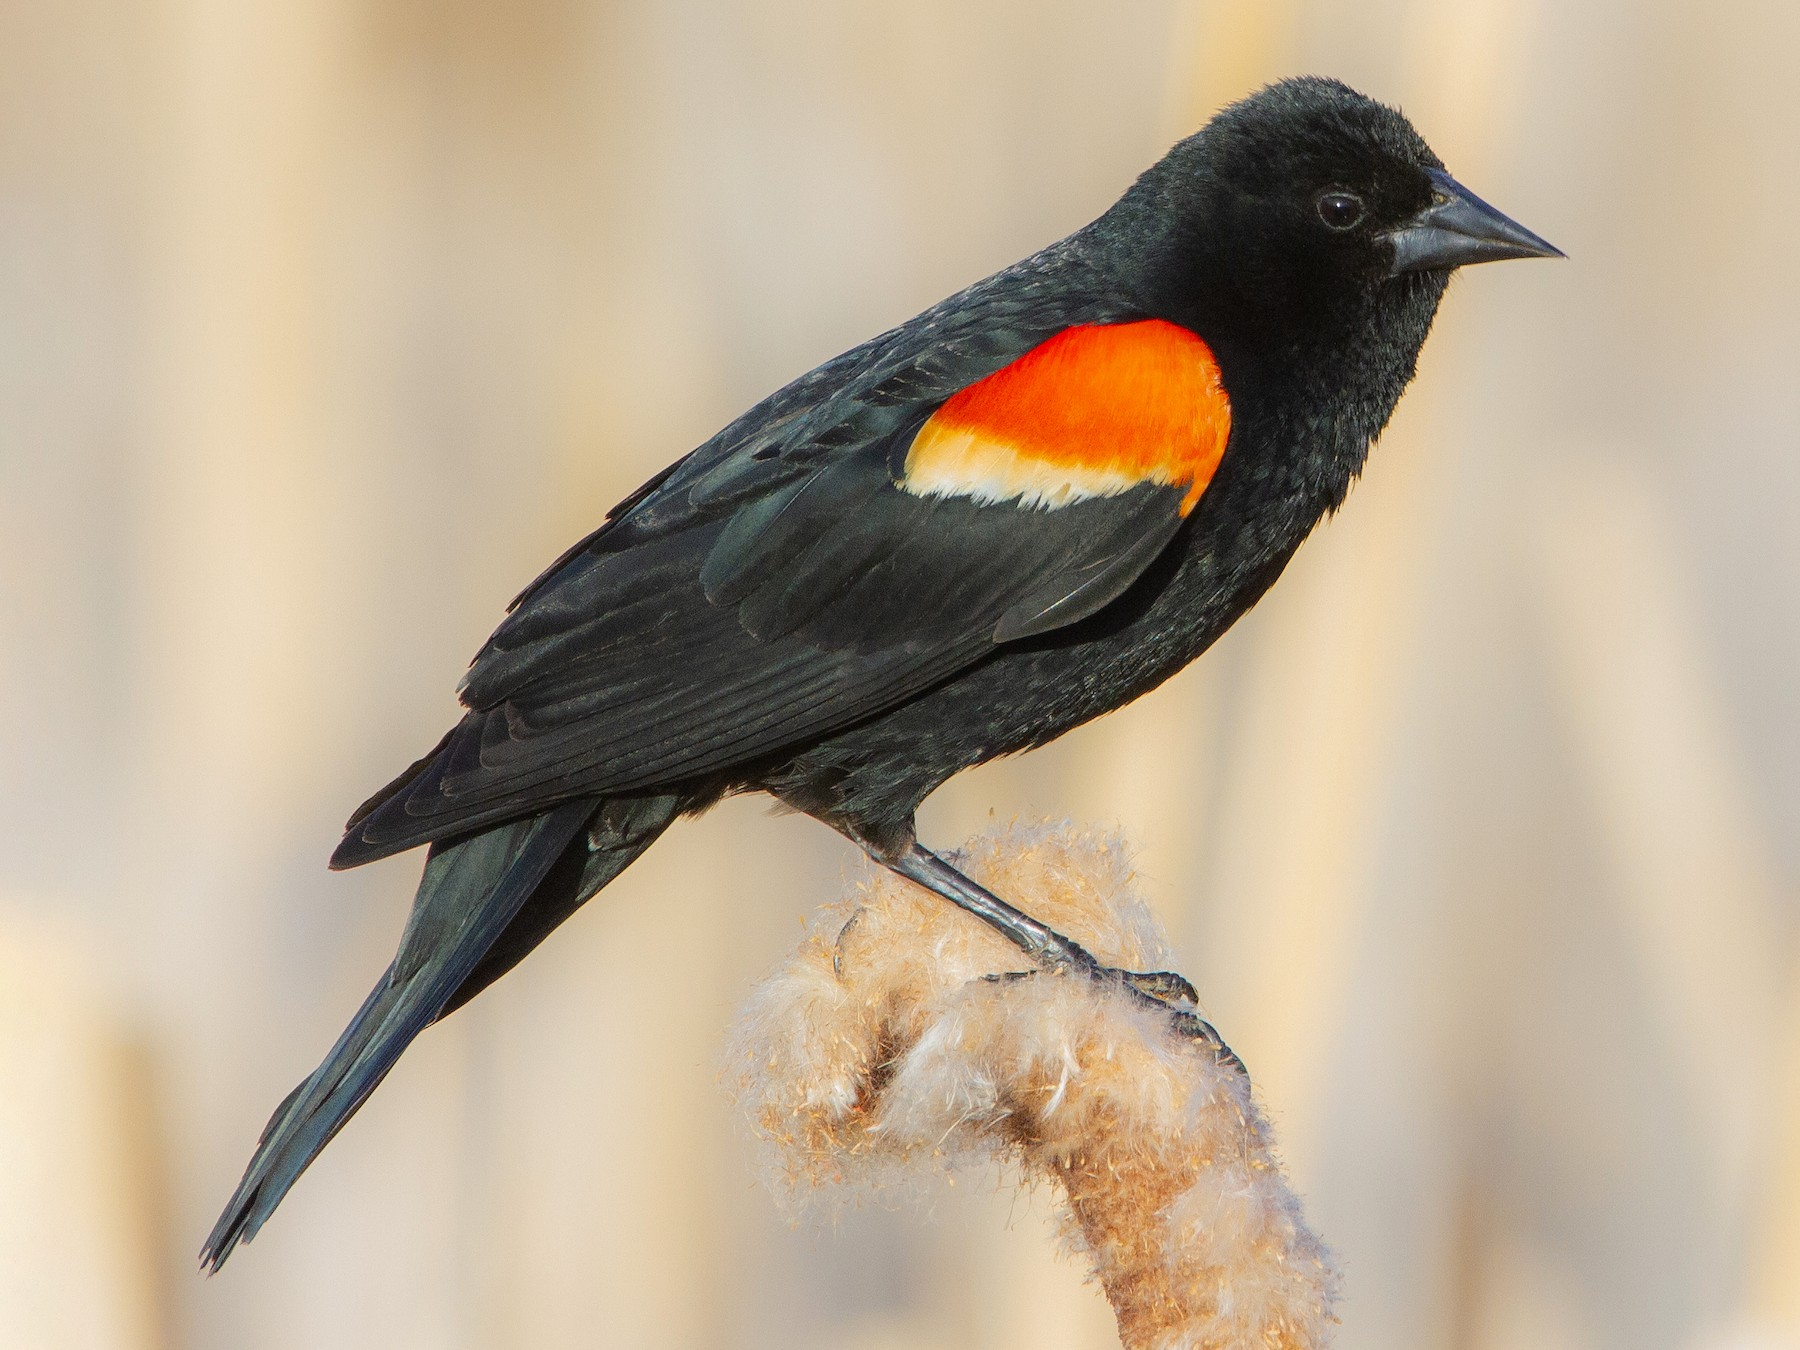 Red-winged Blackbird - Connor Charchuk